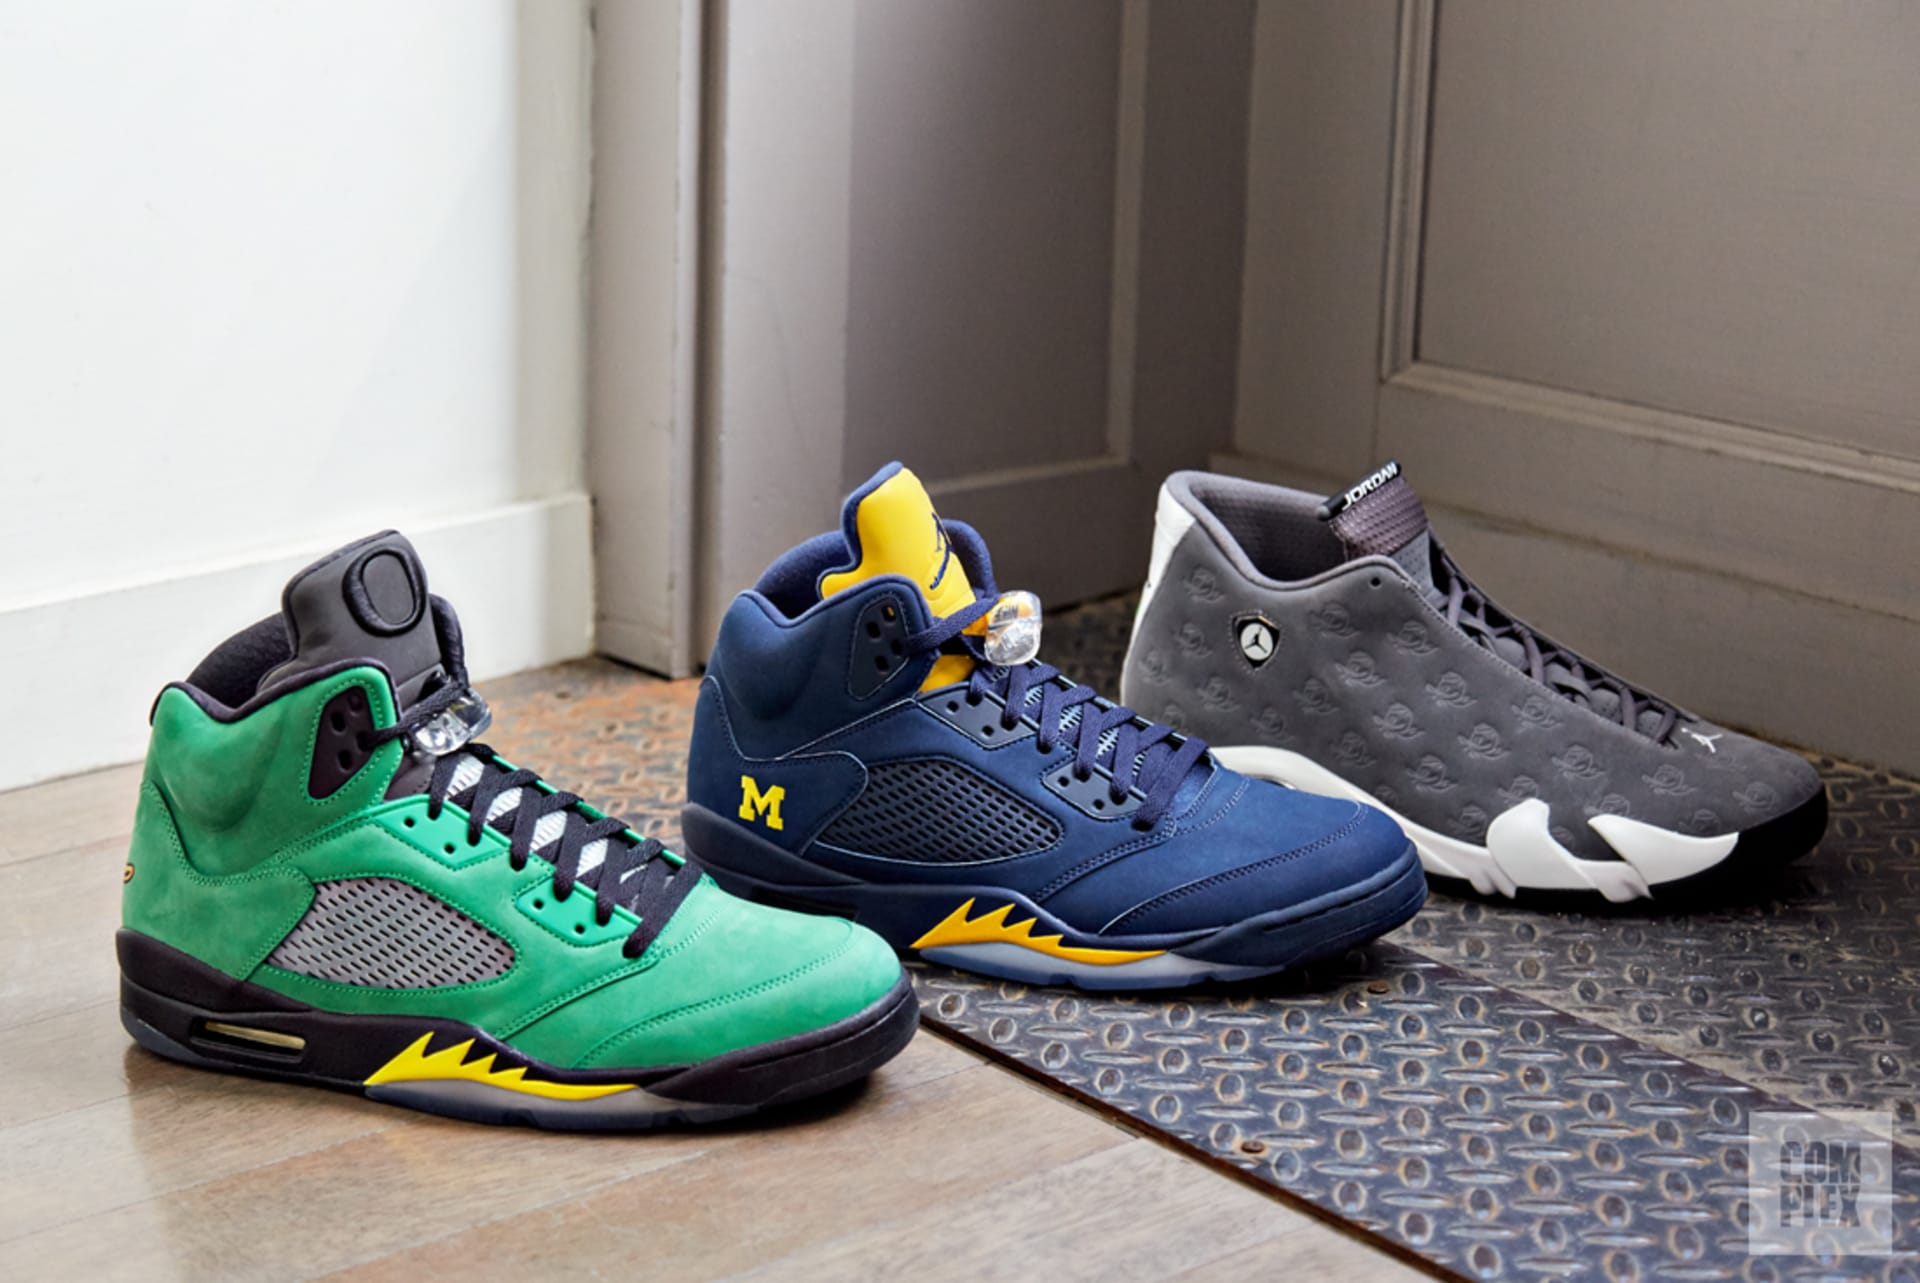 Air Jordan PEs made for the University of Oregon and Michigan. Sneakers  courtesy of Stadium Goods. Image via Complex Original David Cabrera f8f571331